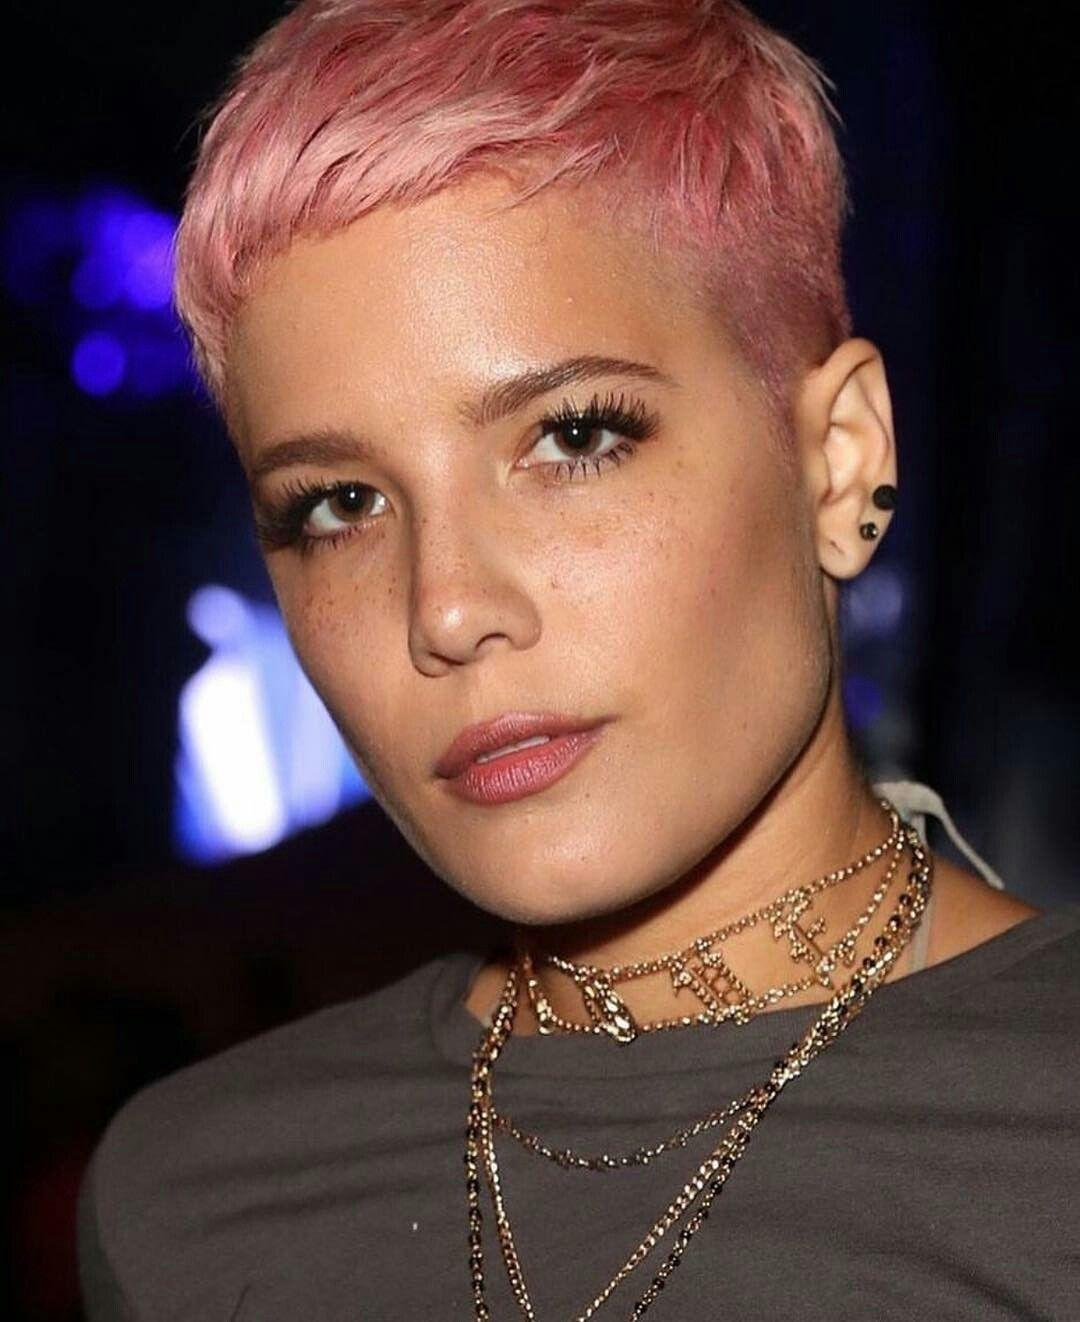 Halsey Hair Styles – How to Choose the Right One For You!